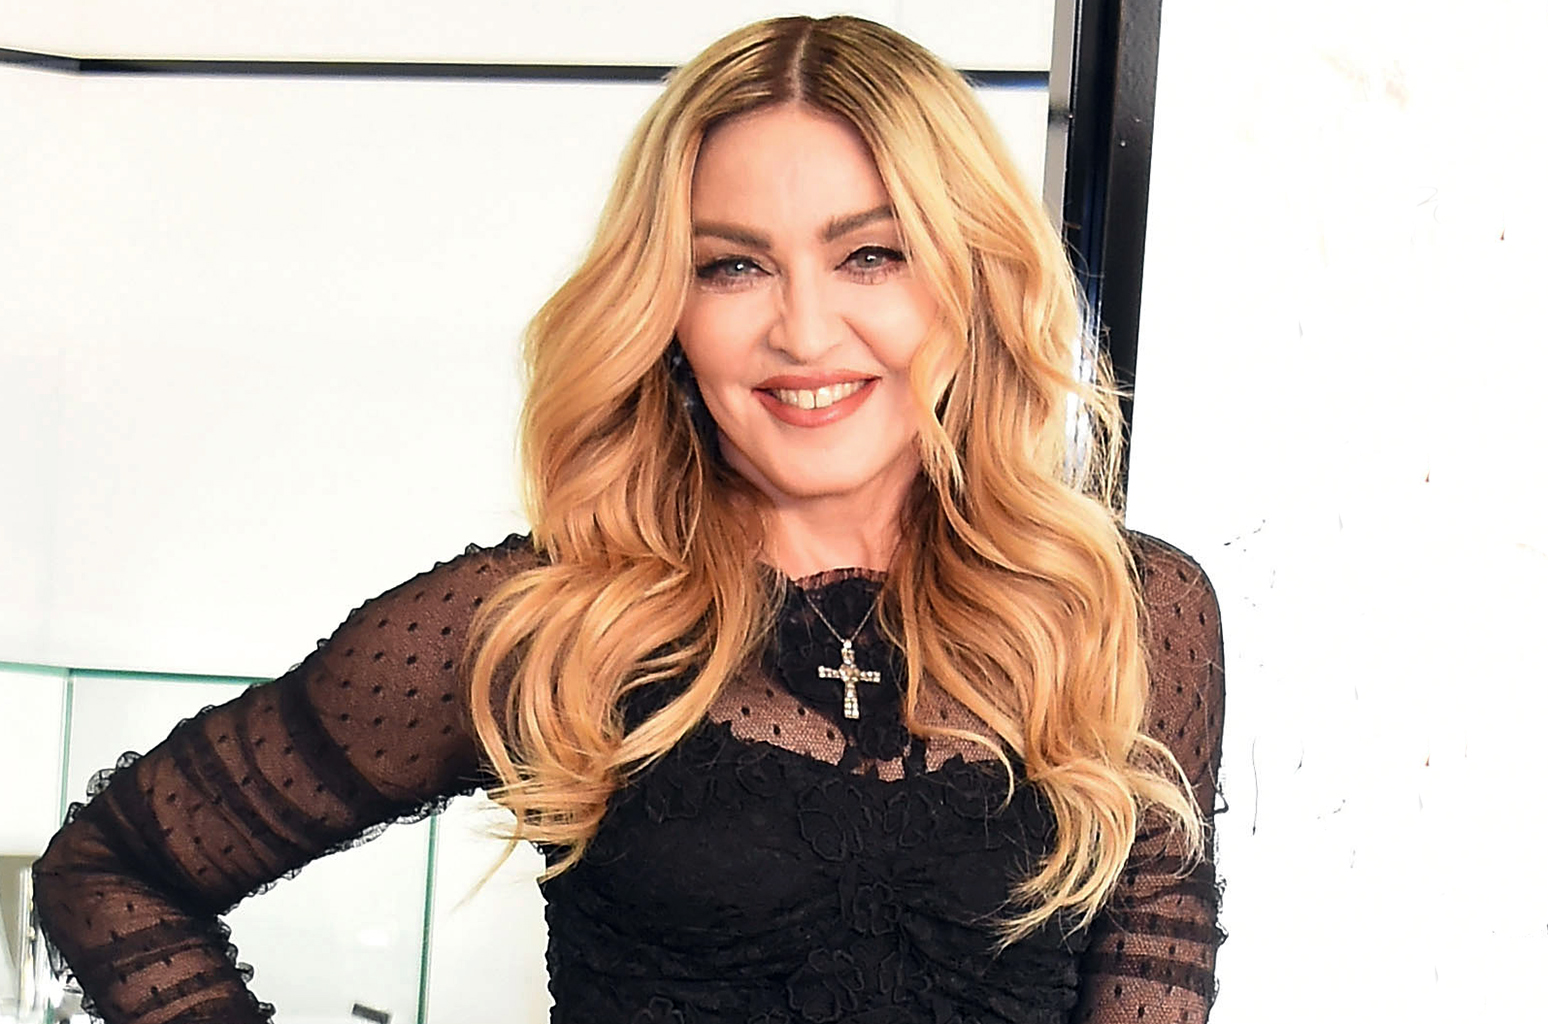 """TOKYO, JAPAN - FEBRUARY 15:  Madonna attends the promotional event for """"MDNA SKIN"""" on February 15, 2016 in Tokyo, Japan.  (Photo by Jun Sato/WireImage)"""